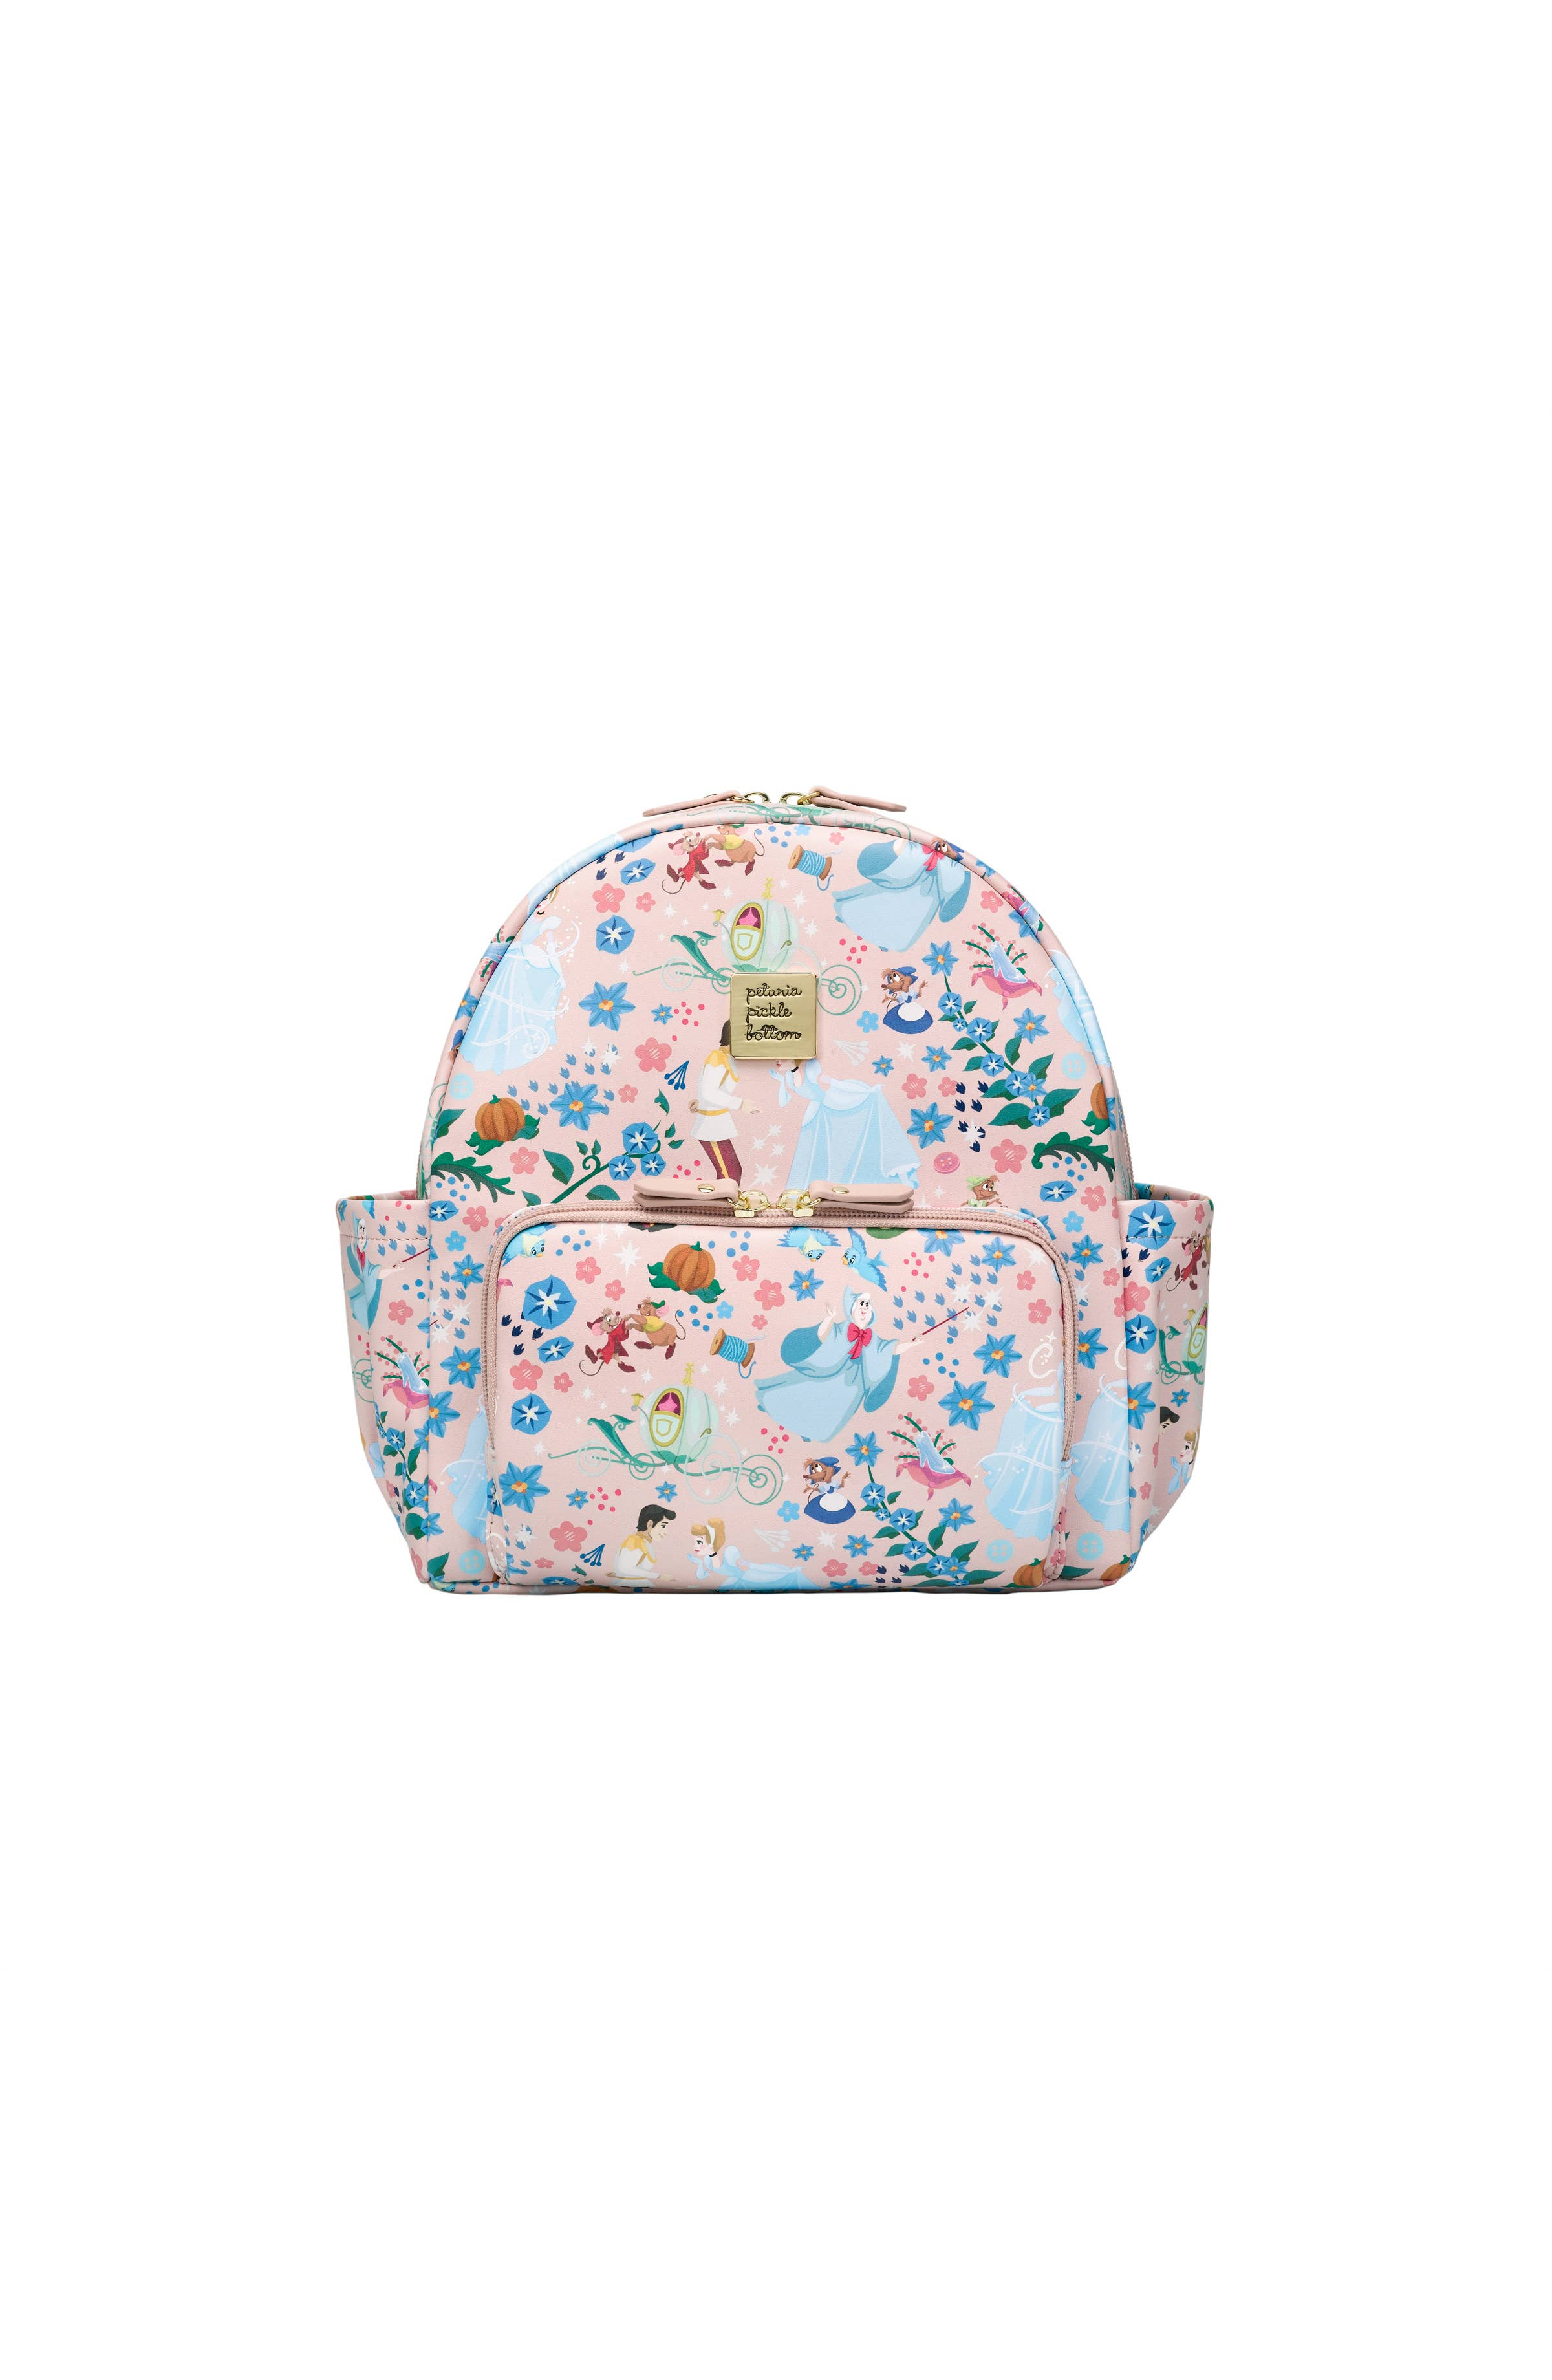 Handmade Backpack Drawstring Lighthouse Print Body with Exterior Pocket